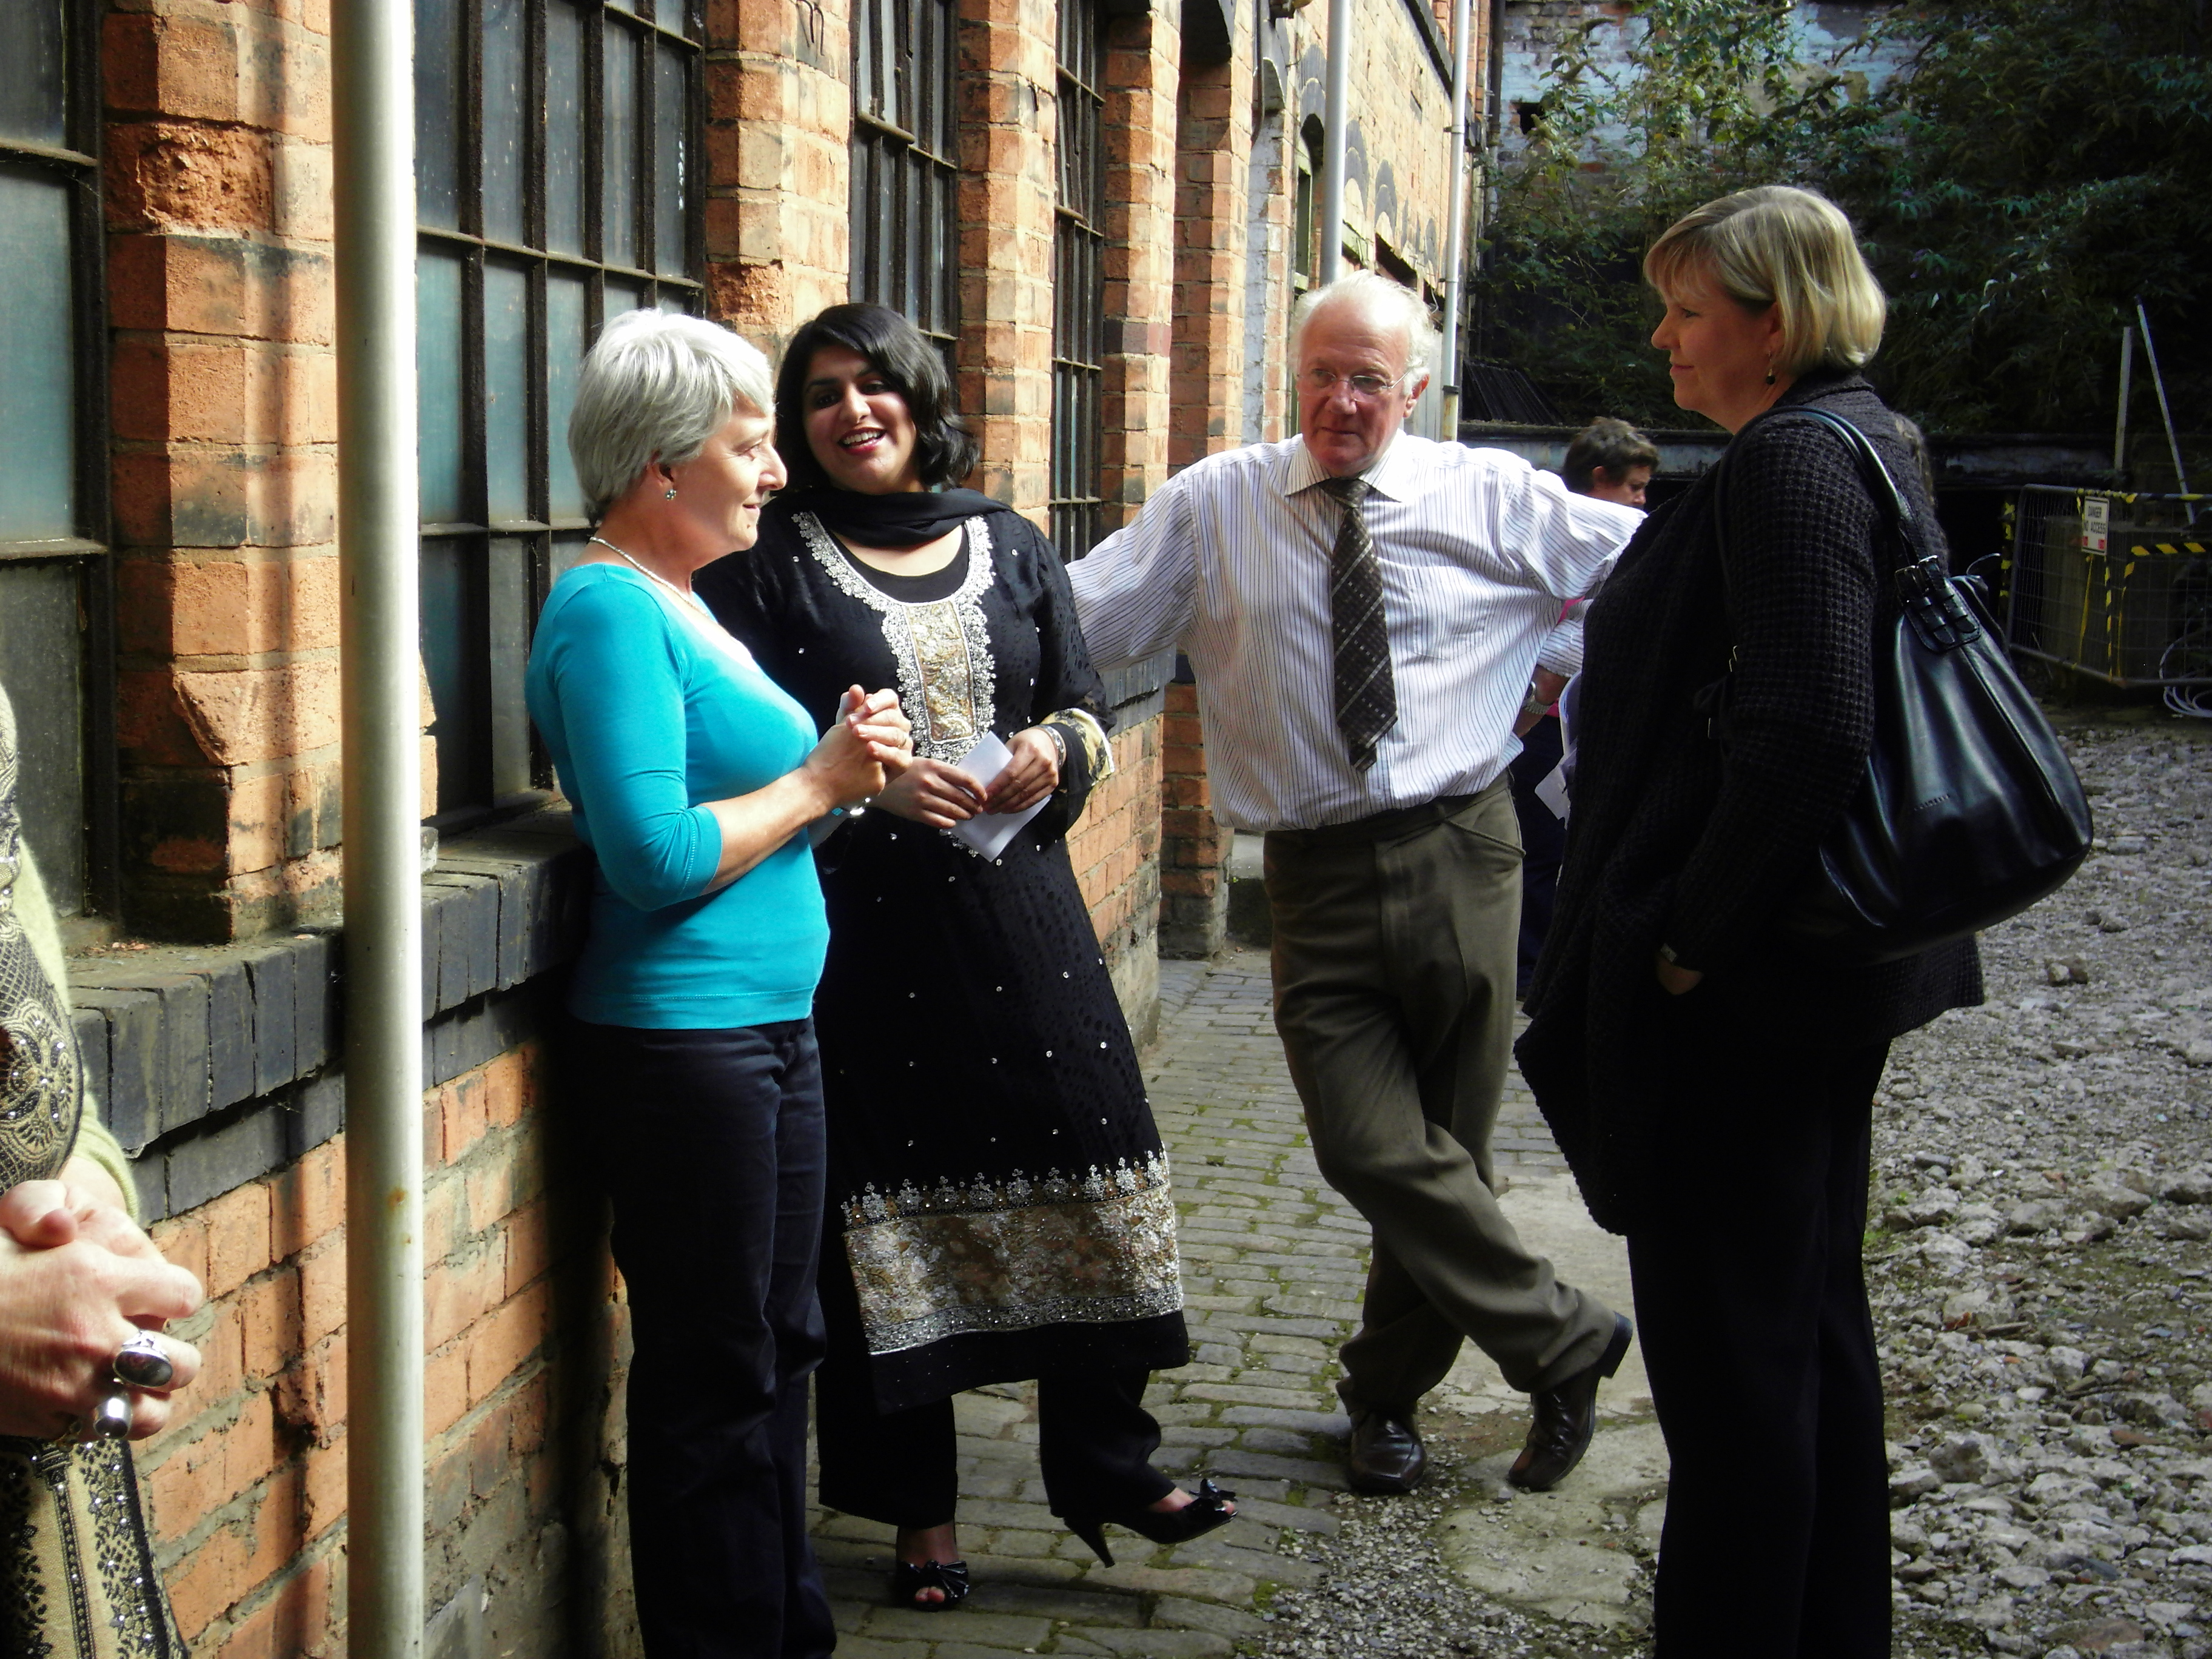 Shabana Mahmood MP with Elizabeth Perkins, BCT Director, Bob Beauchamp, Chairman and Anne Jenkins of Heritage Lottery Fund